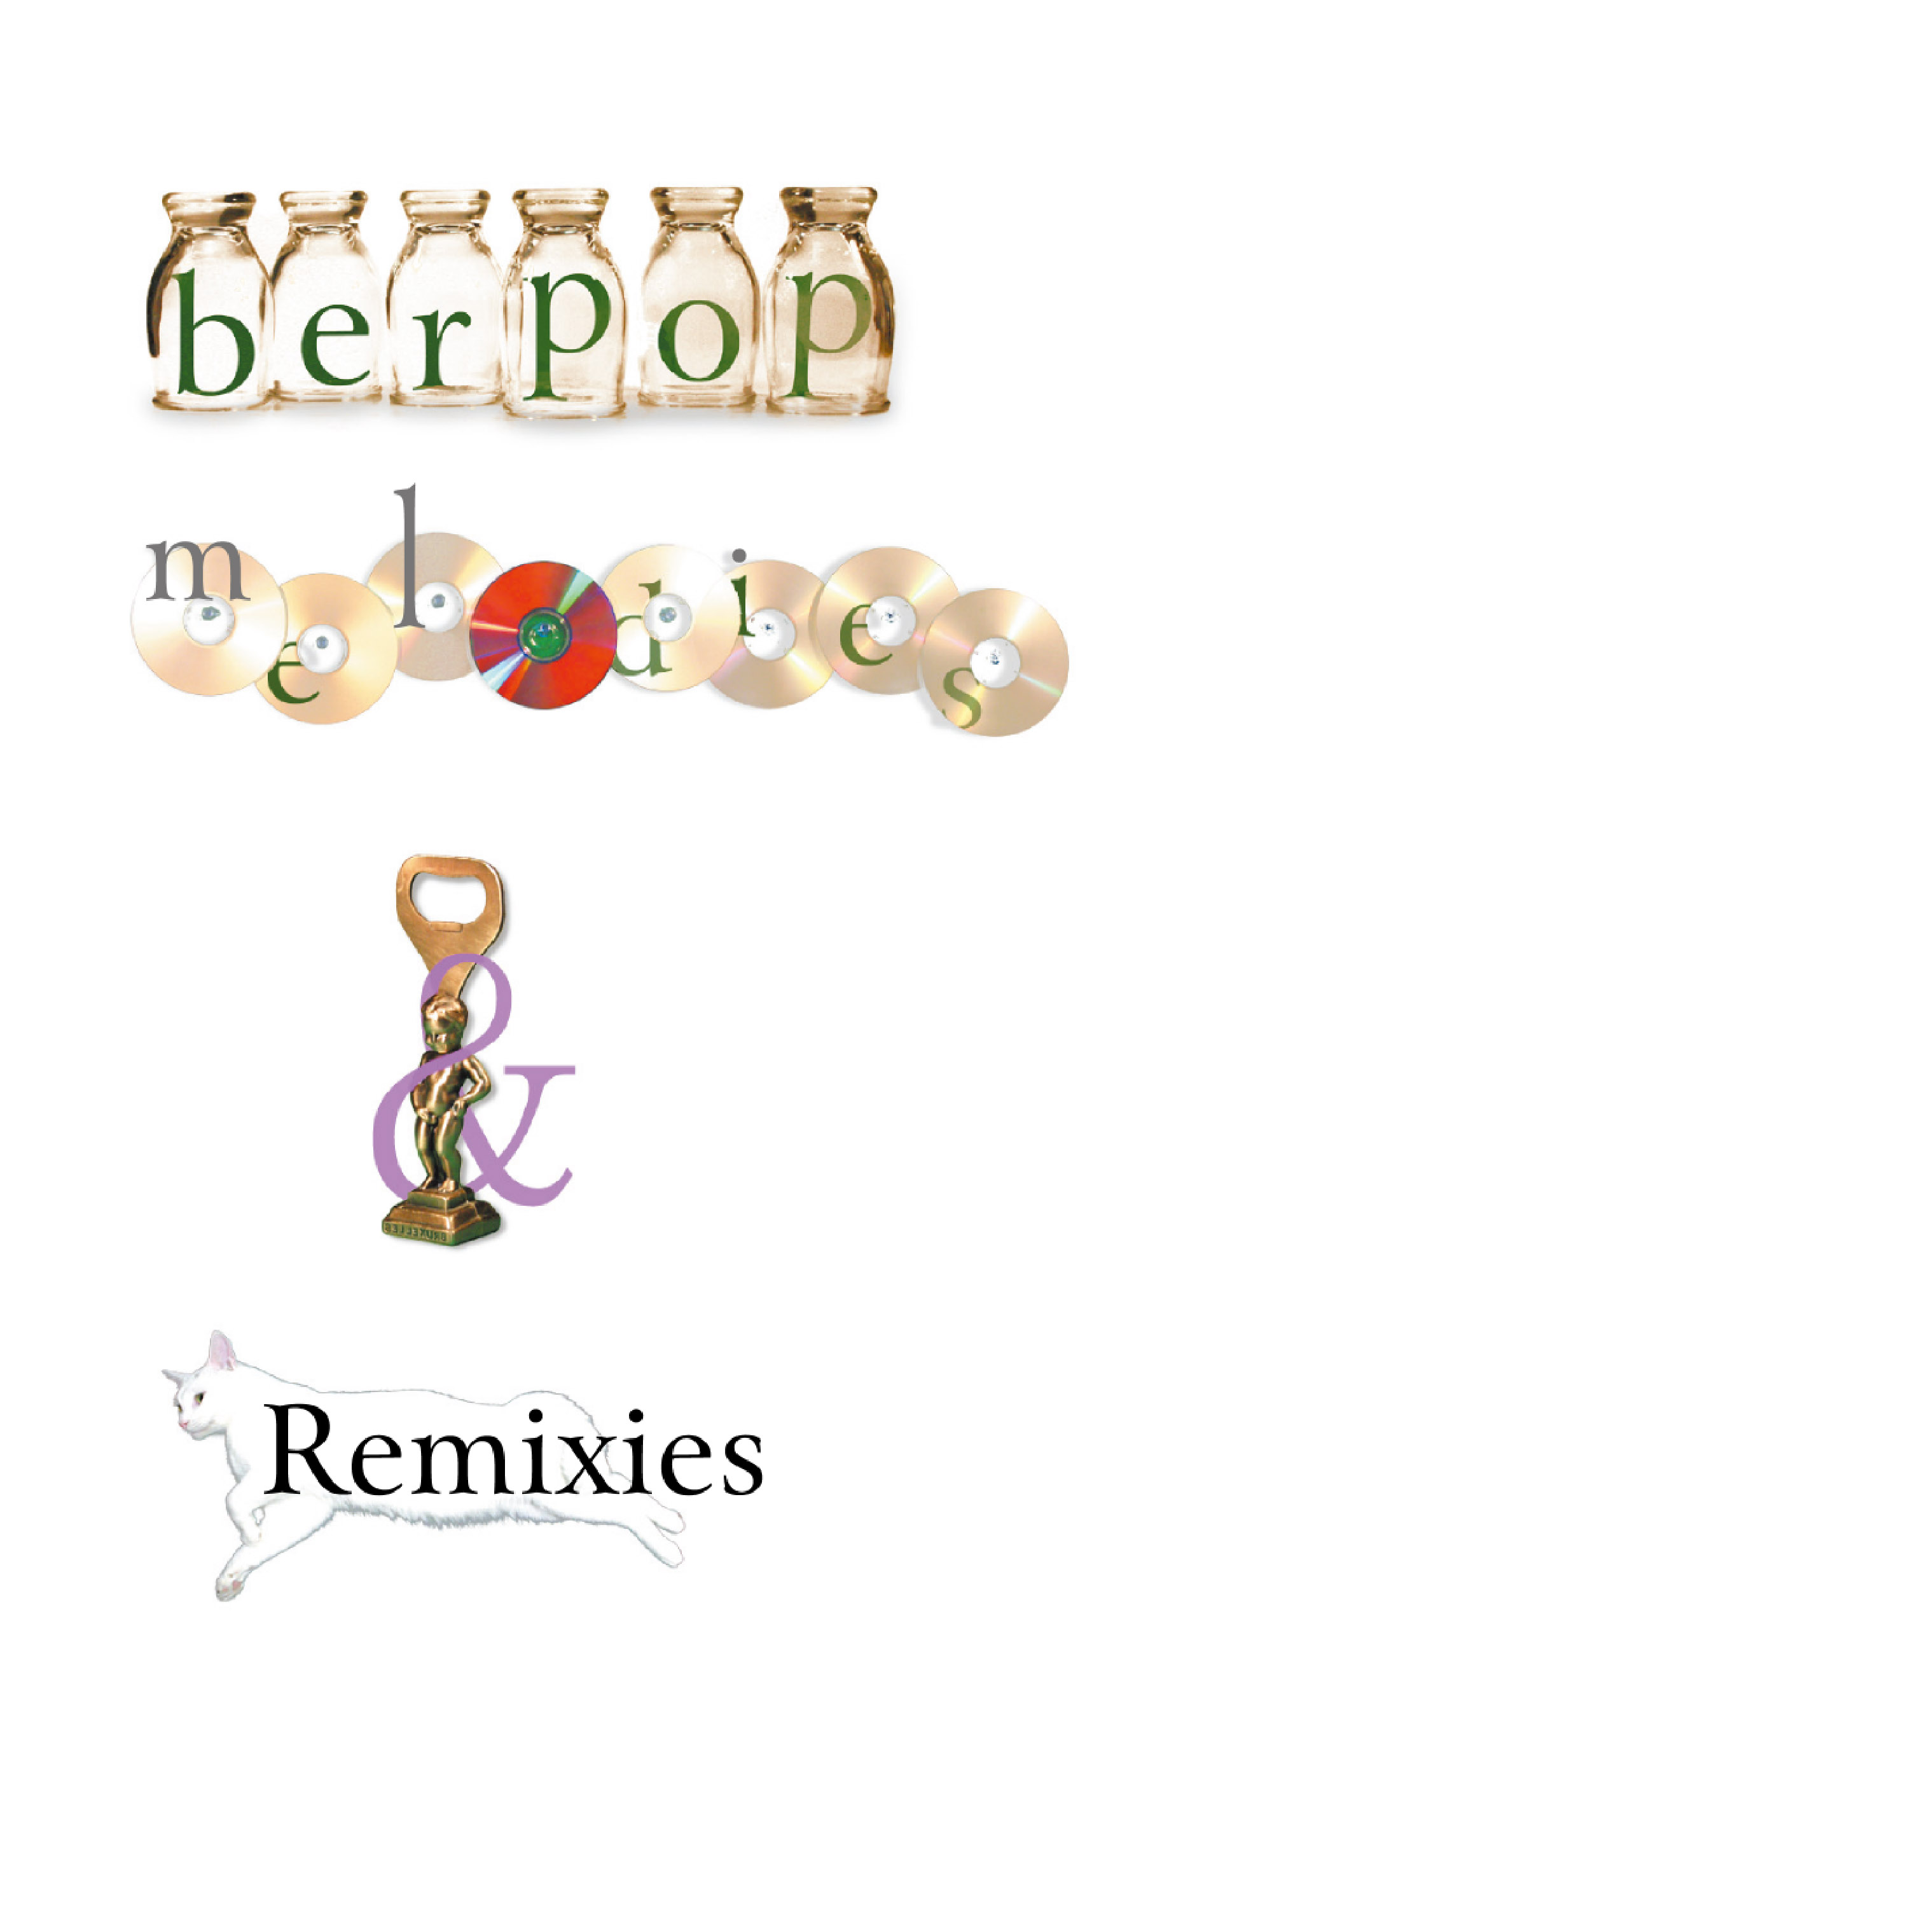 berpop melodies & Remixies